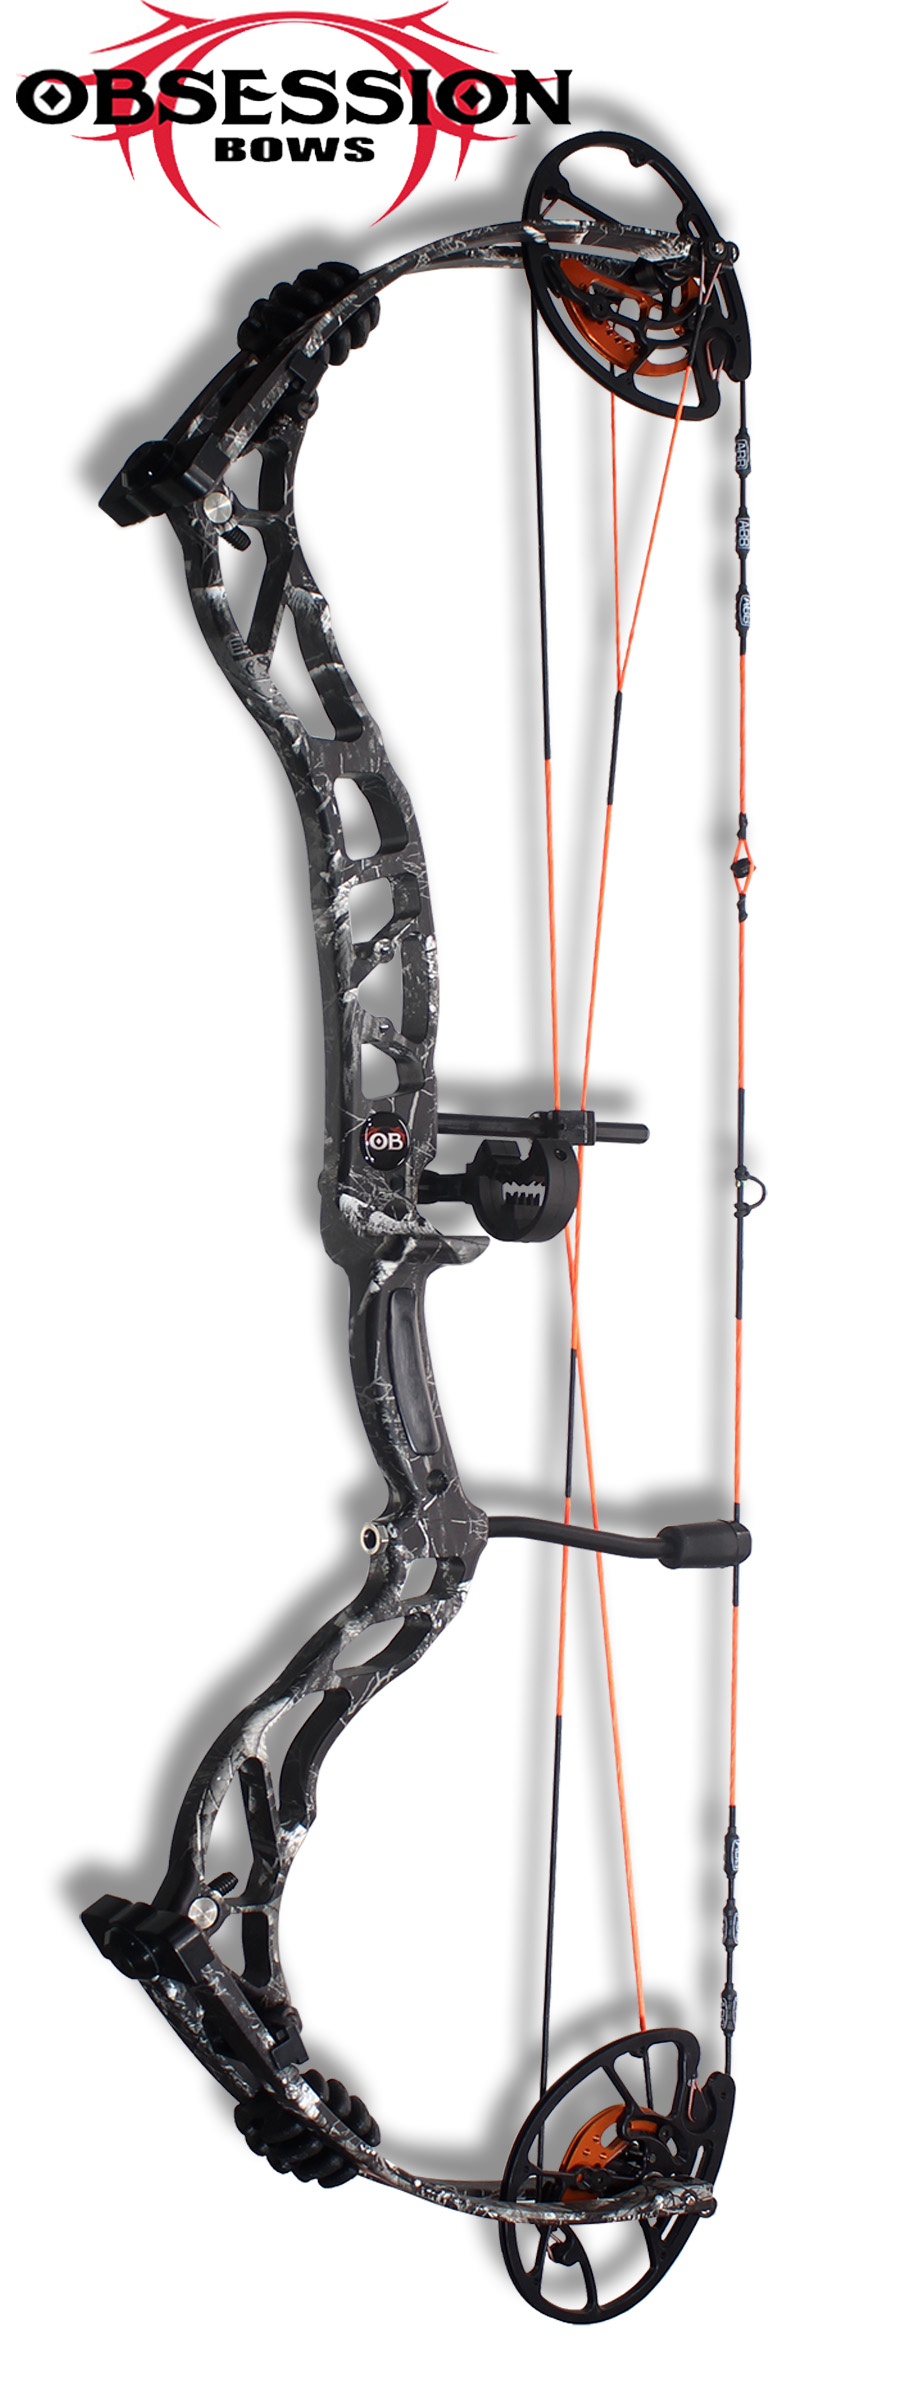 2021 obsession turmoil RZ bow plus package